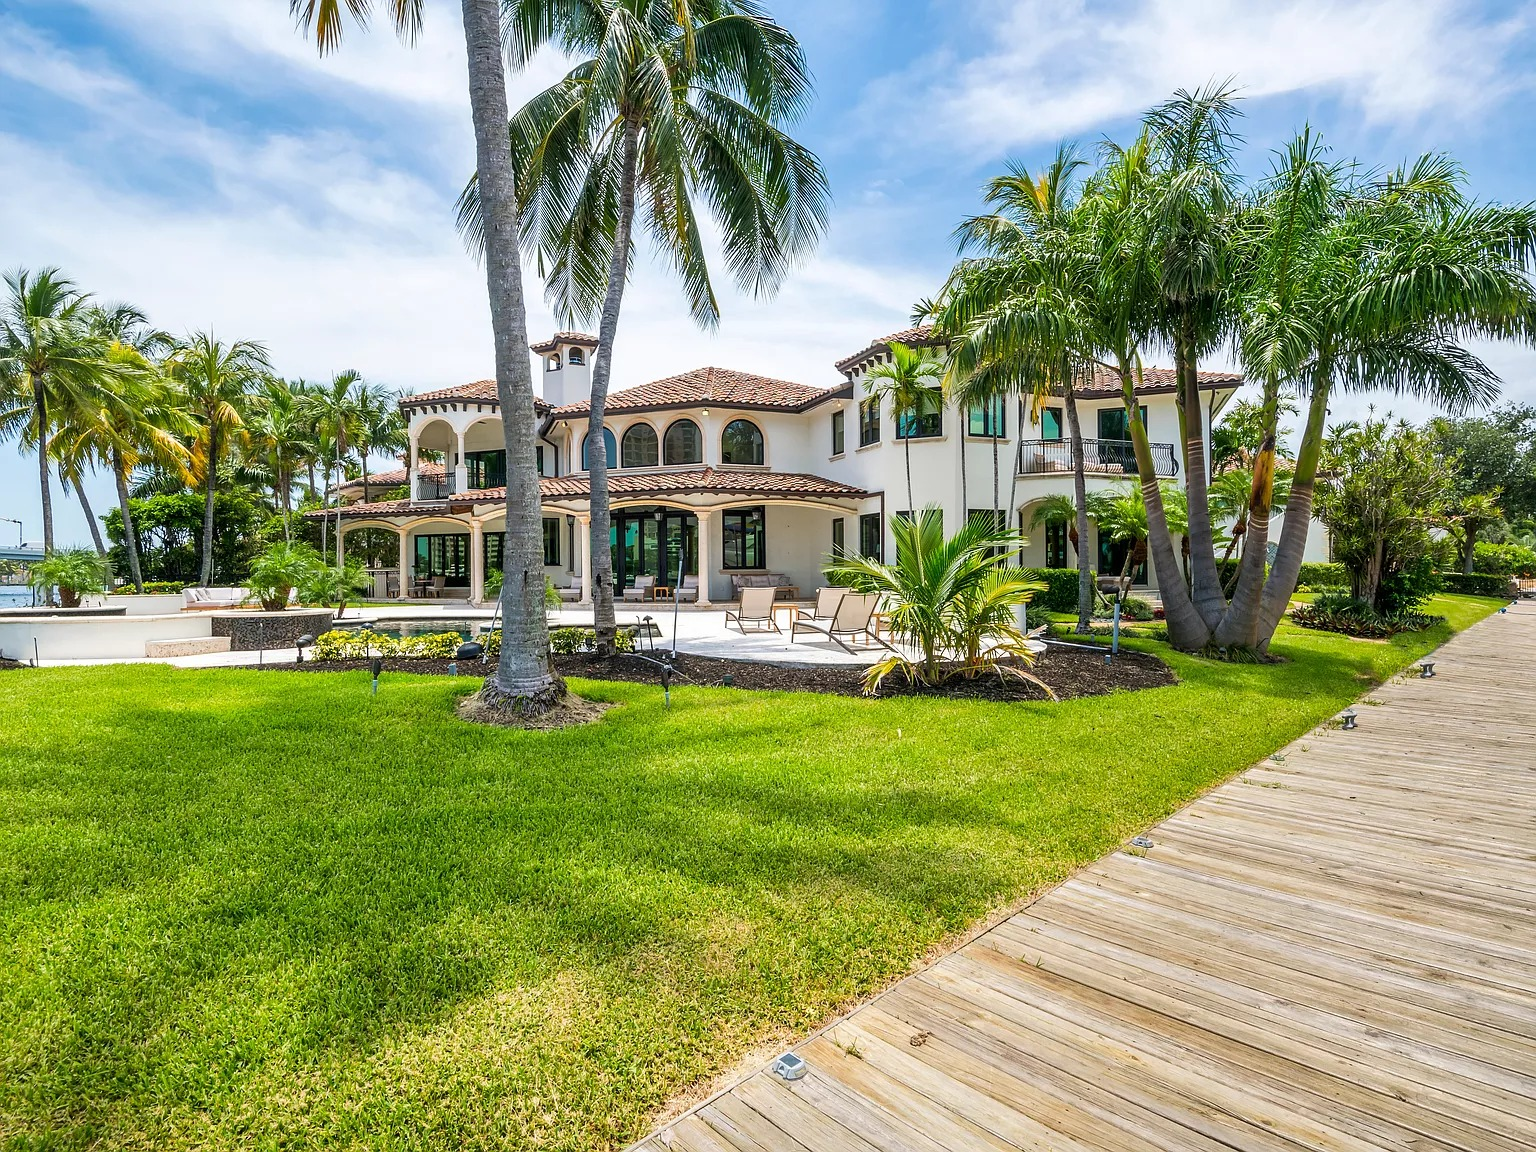 2623 Delmar Pl, Fort Lauderdale, FL 33301 - $10,800,000 home for sale, house images, photos and pics gallery